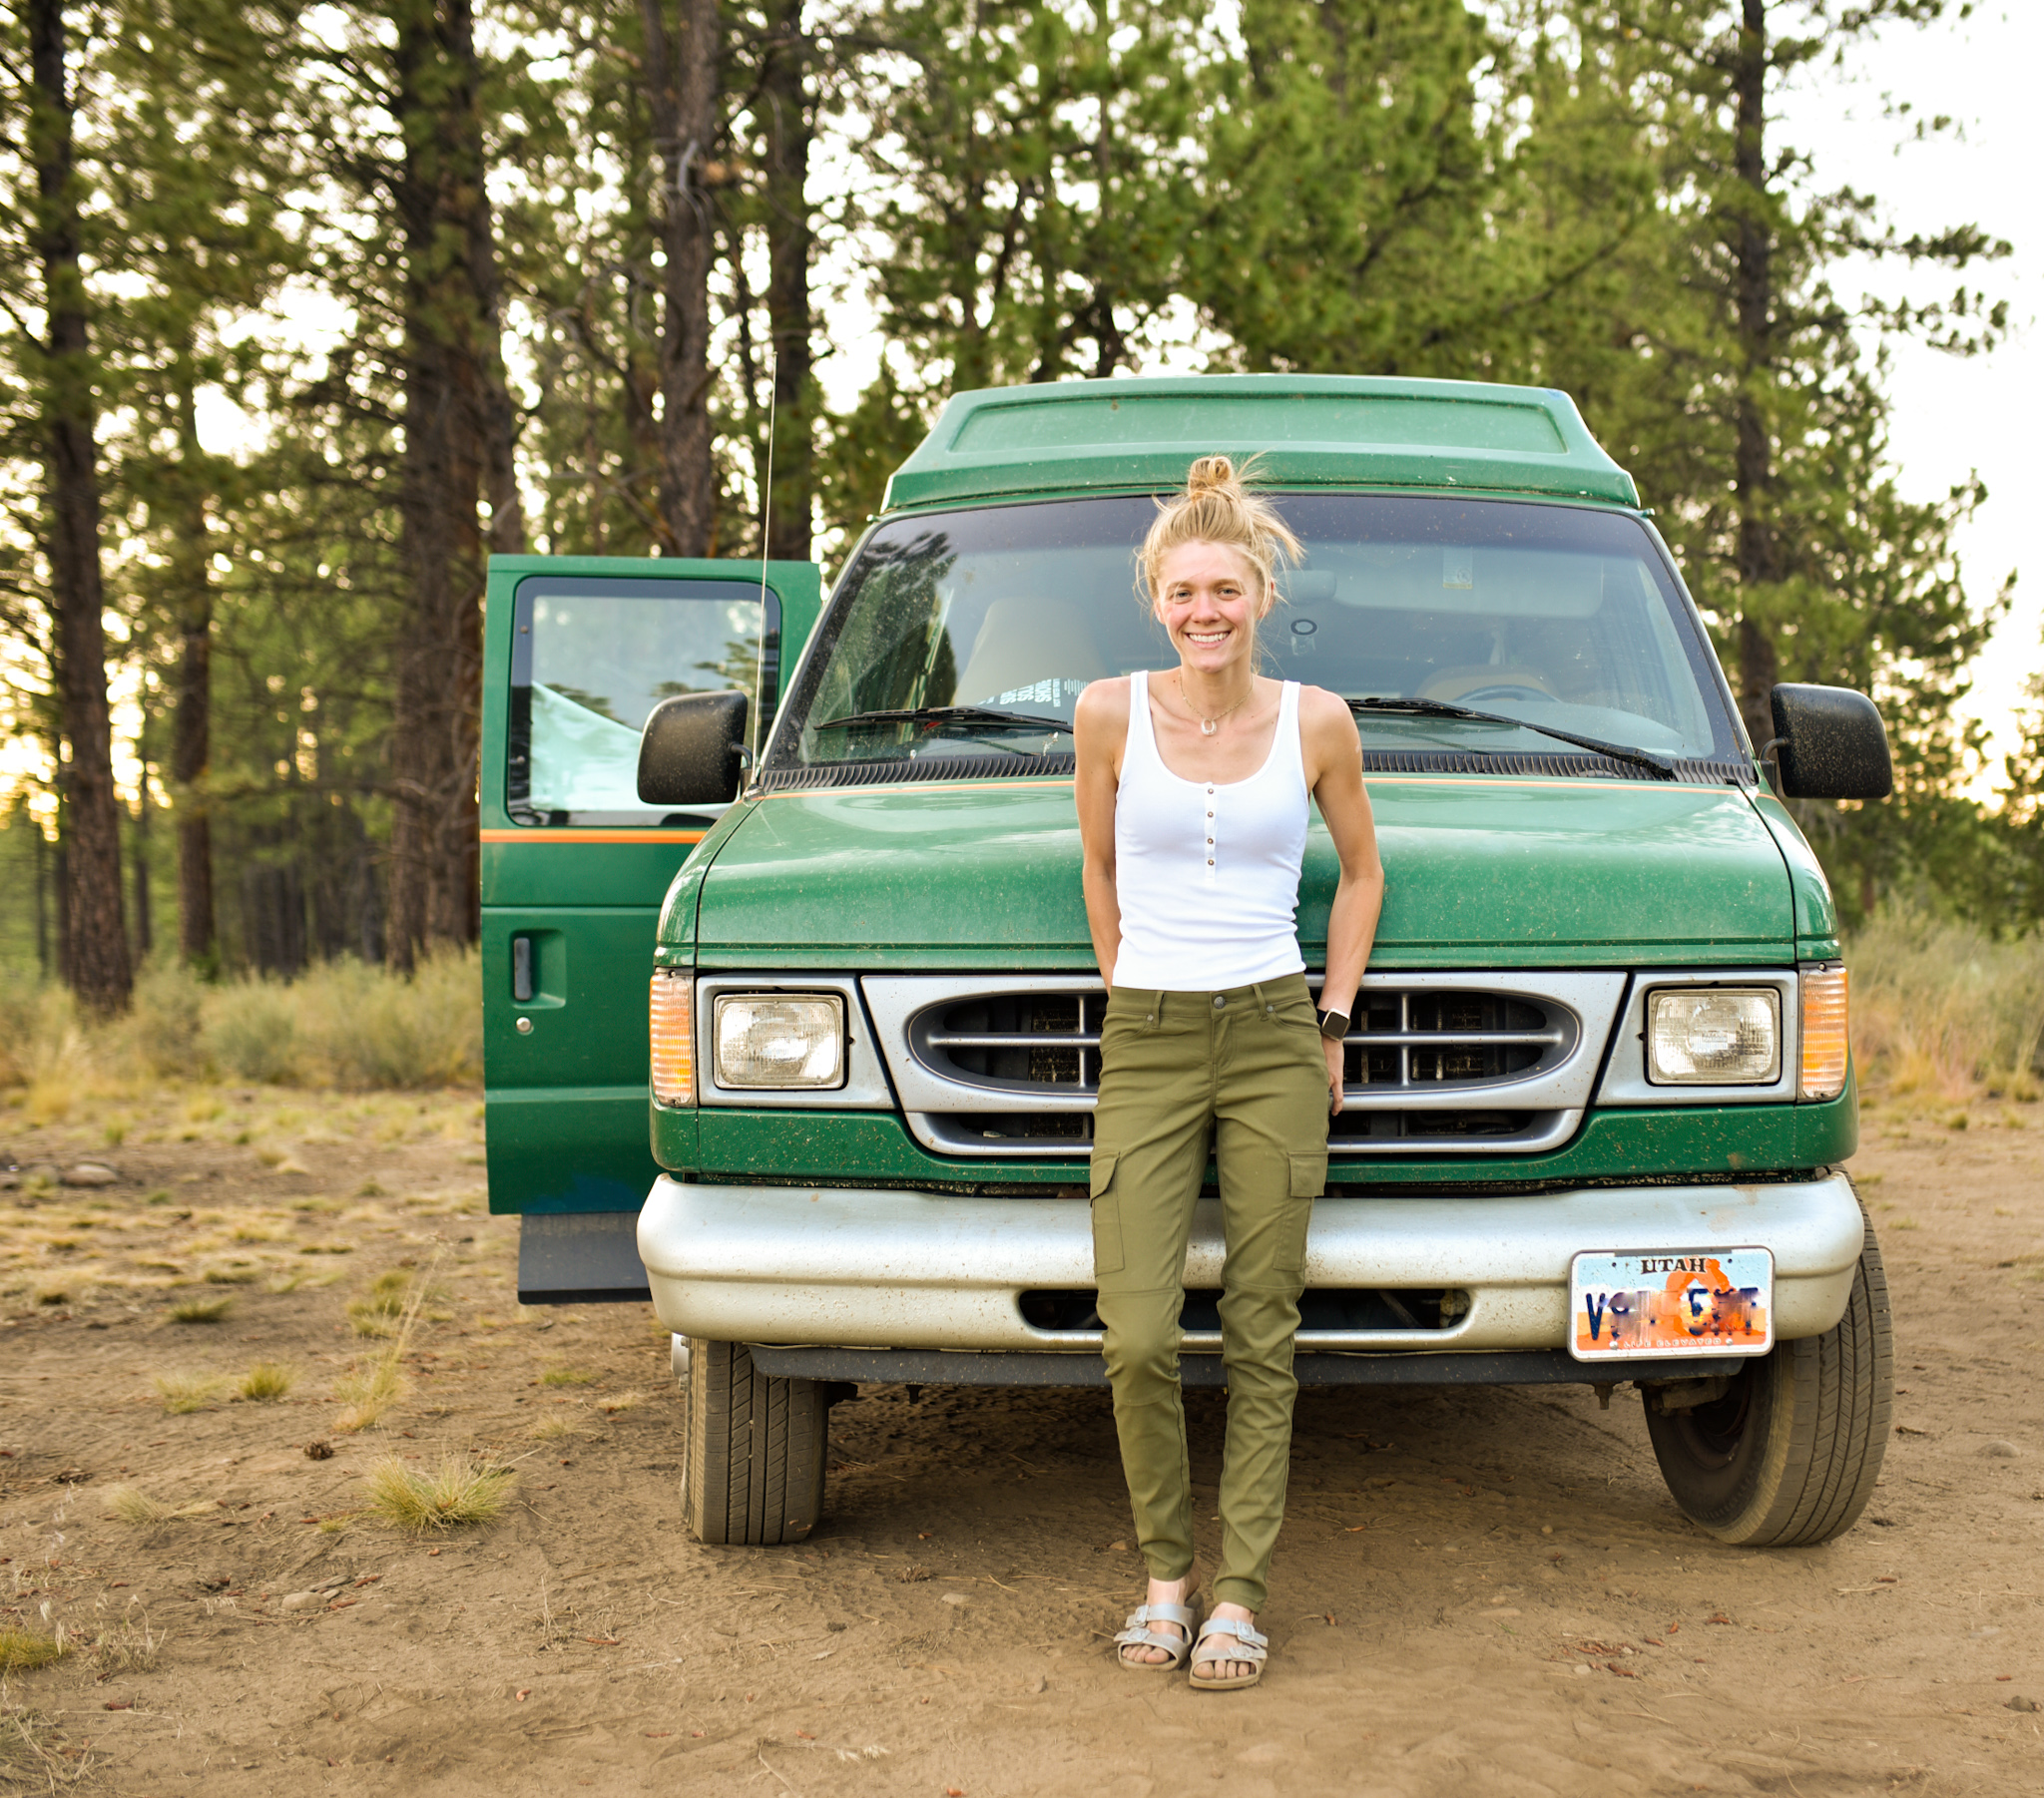 Solo Female Camper Makes a Holiday Inn Shuttle Her Home on Wheels